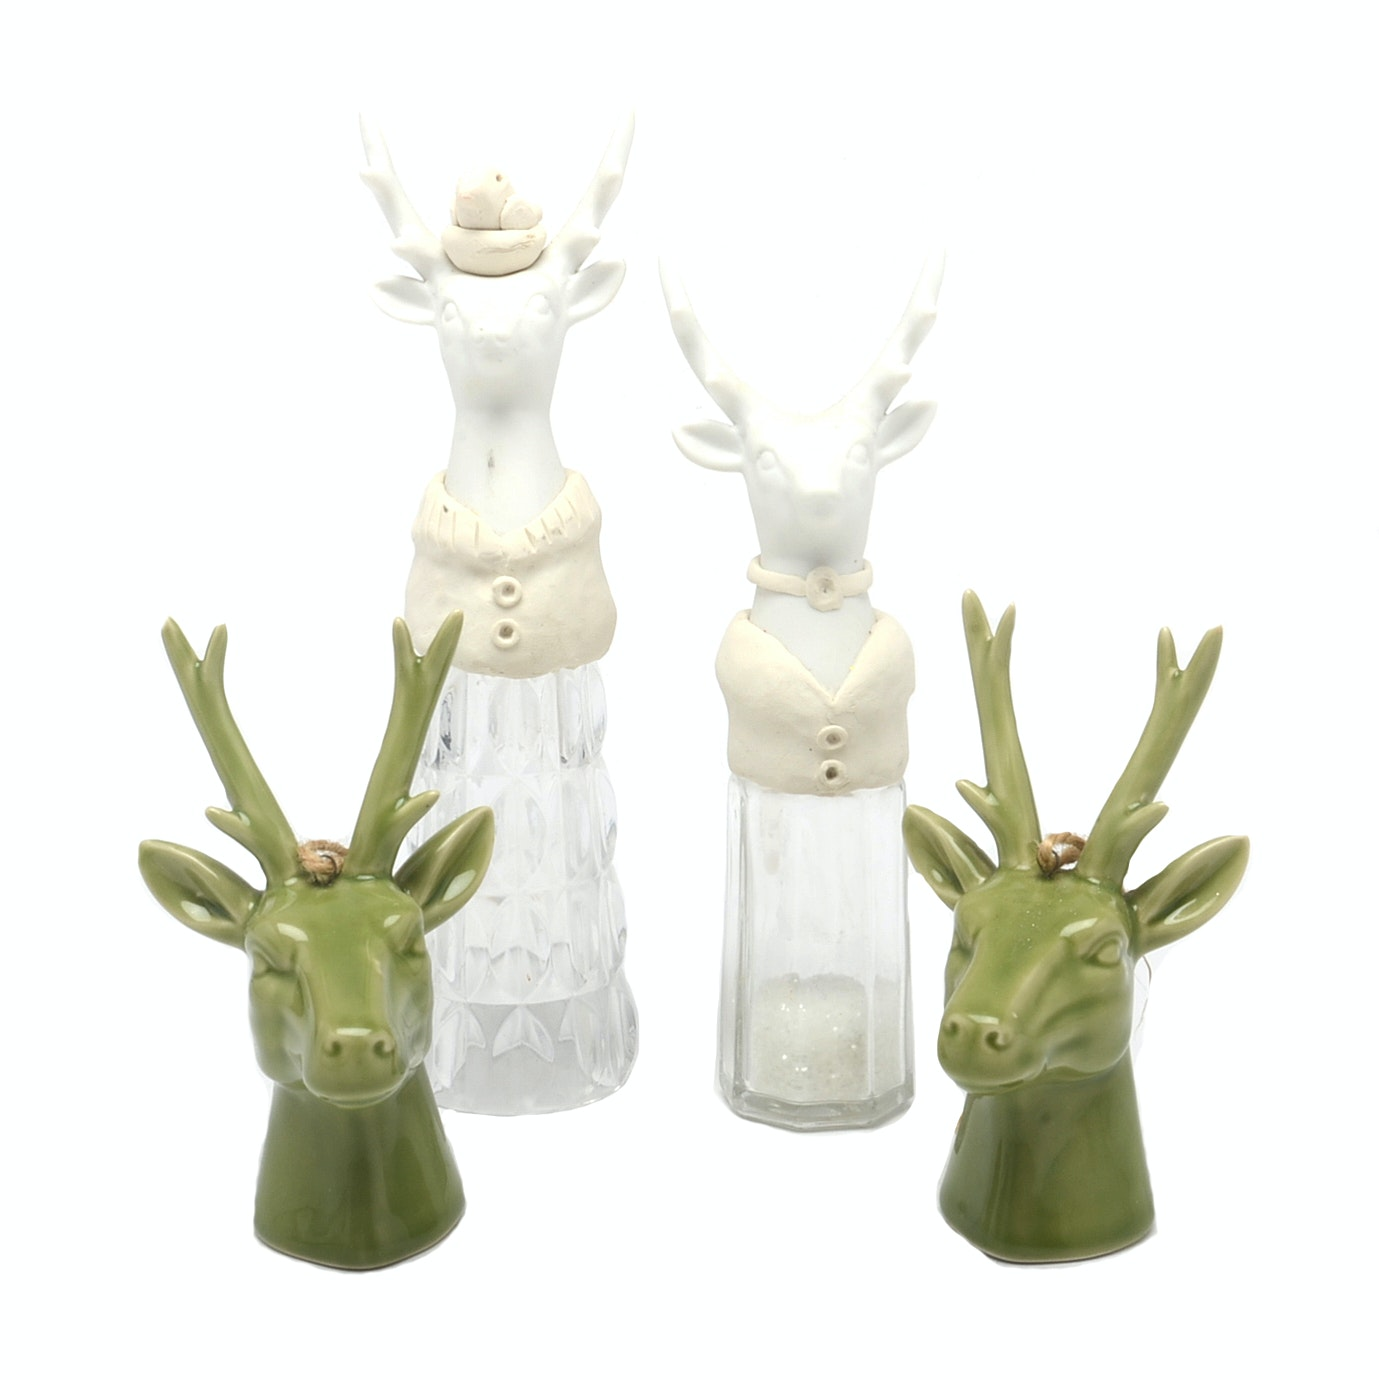 Collection of Deer Figurines and Ornaments